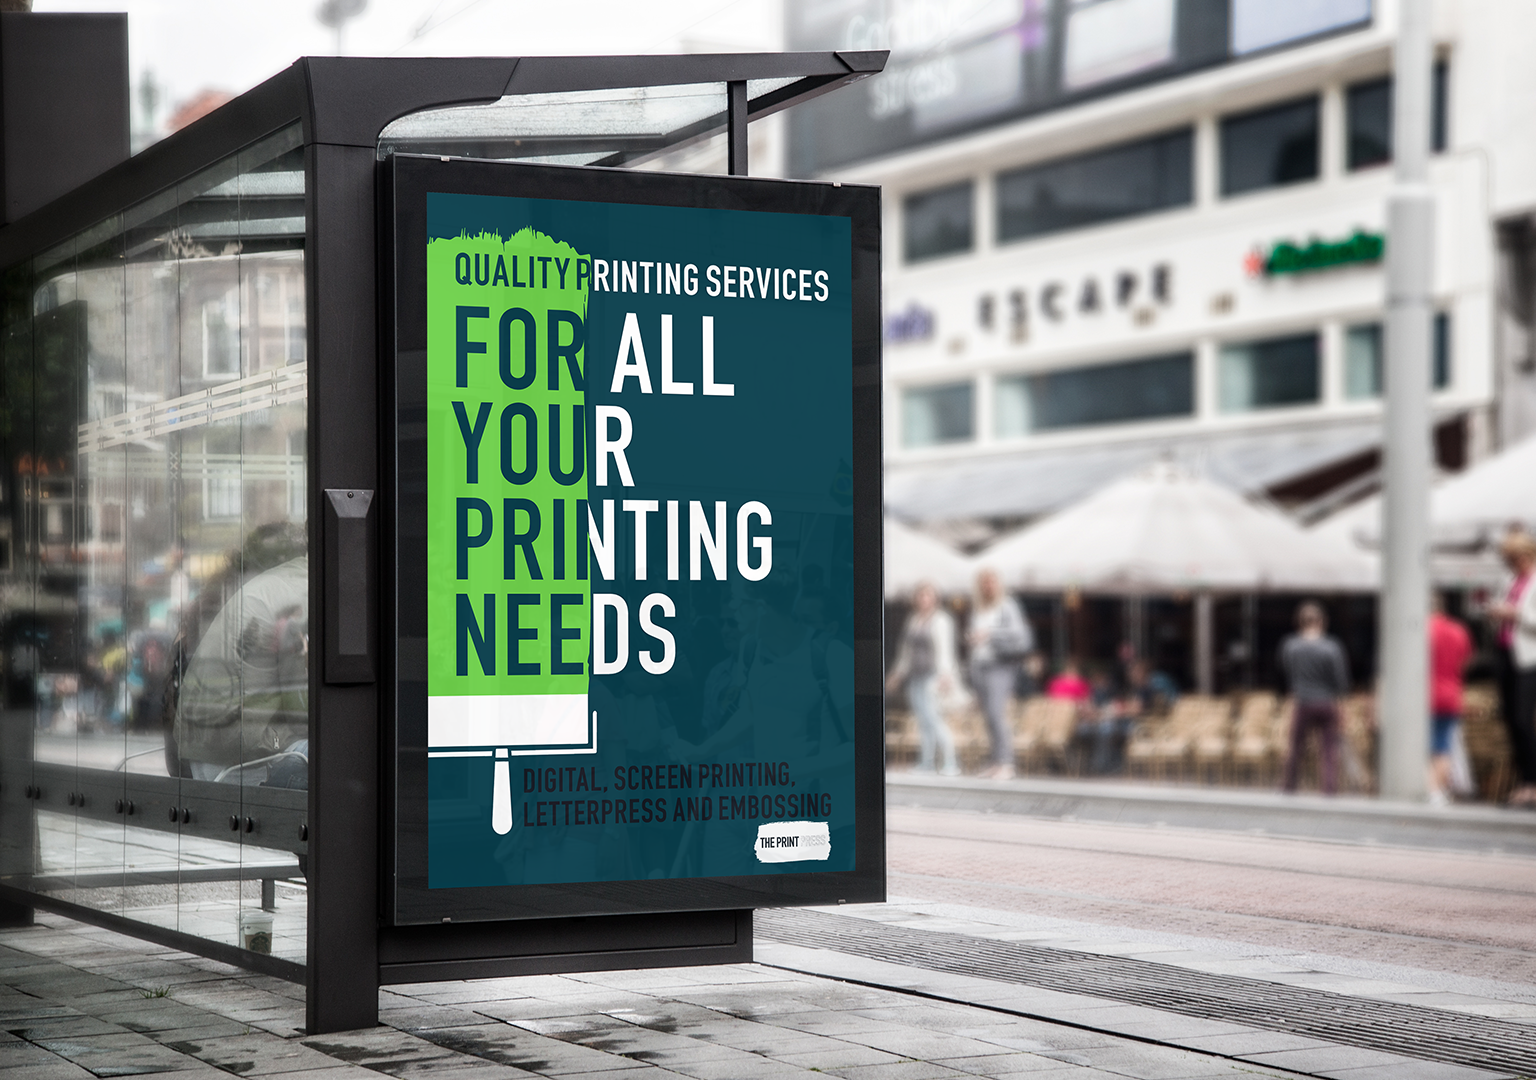 The Print Press bus stop ad